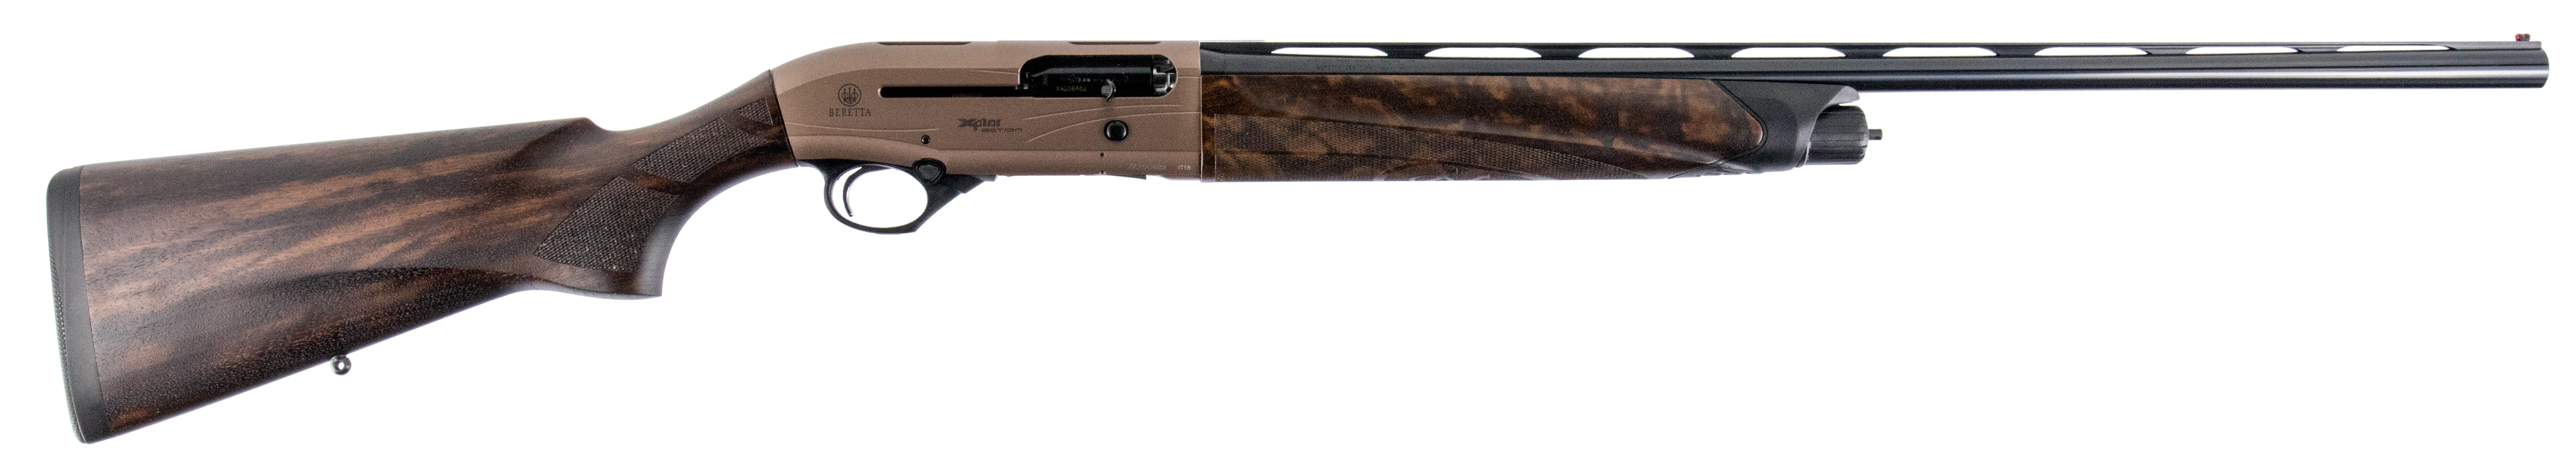 Beretta A400 Xplor Action Semi-Auto Shotgun 3'' 20 Gauge 28'' Bronze Toned Aluminum Alloy - Walnut